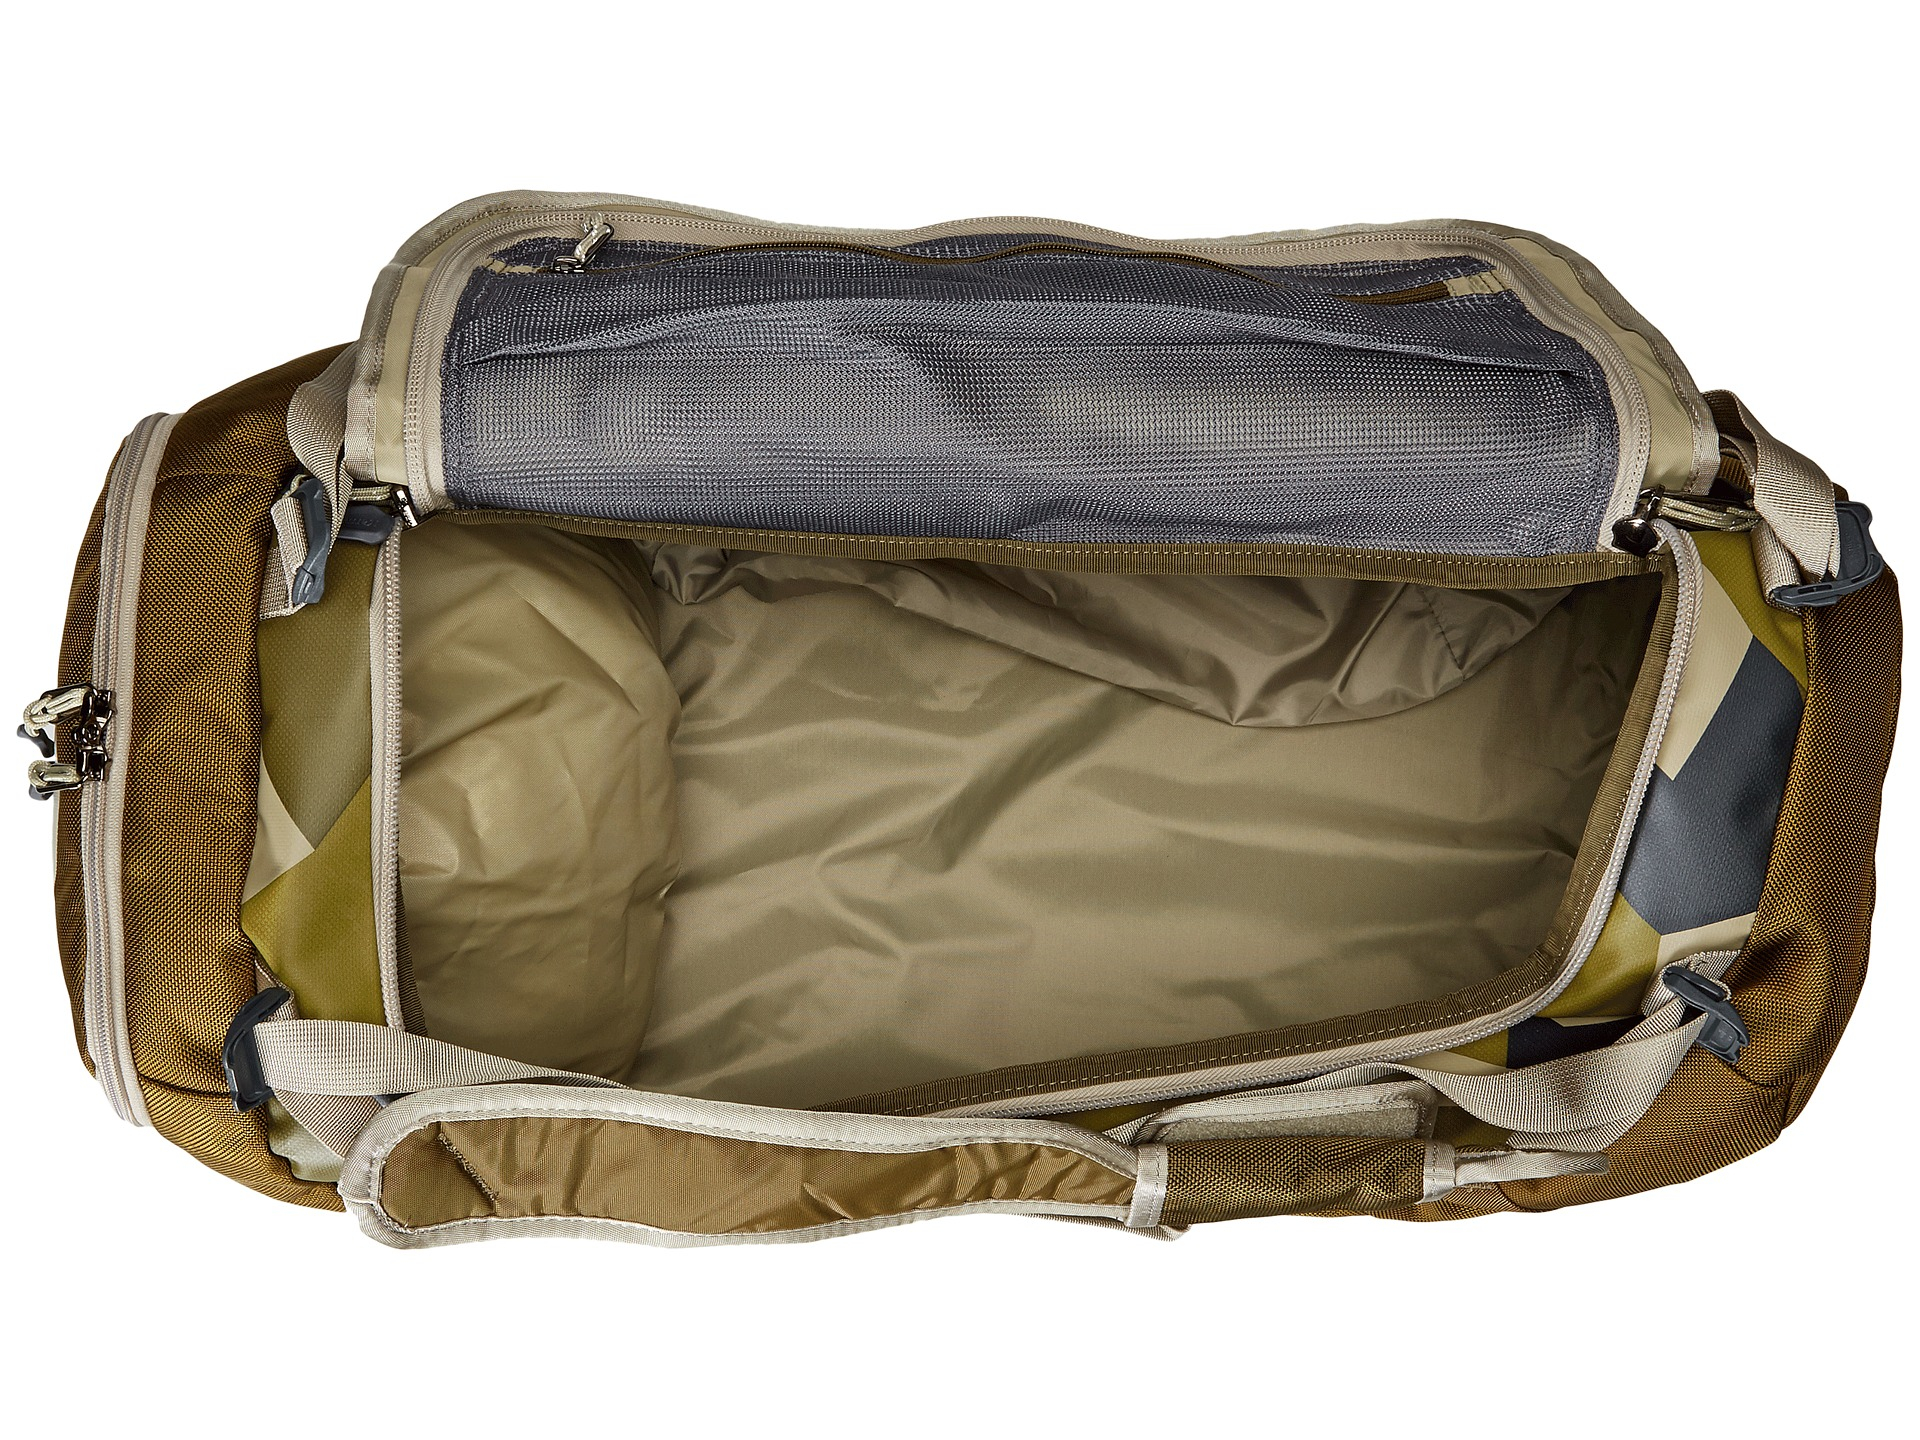 b87c2eebc873 Lyst - Marmot Long Hauler Duffle Bag for Men